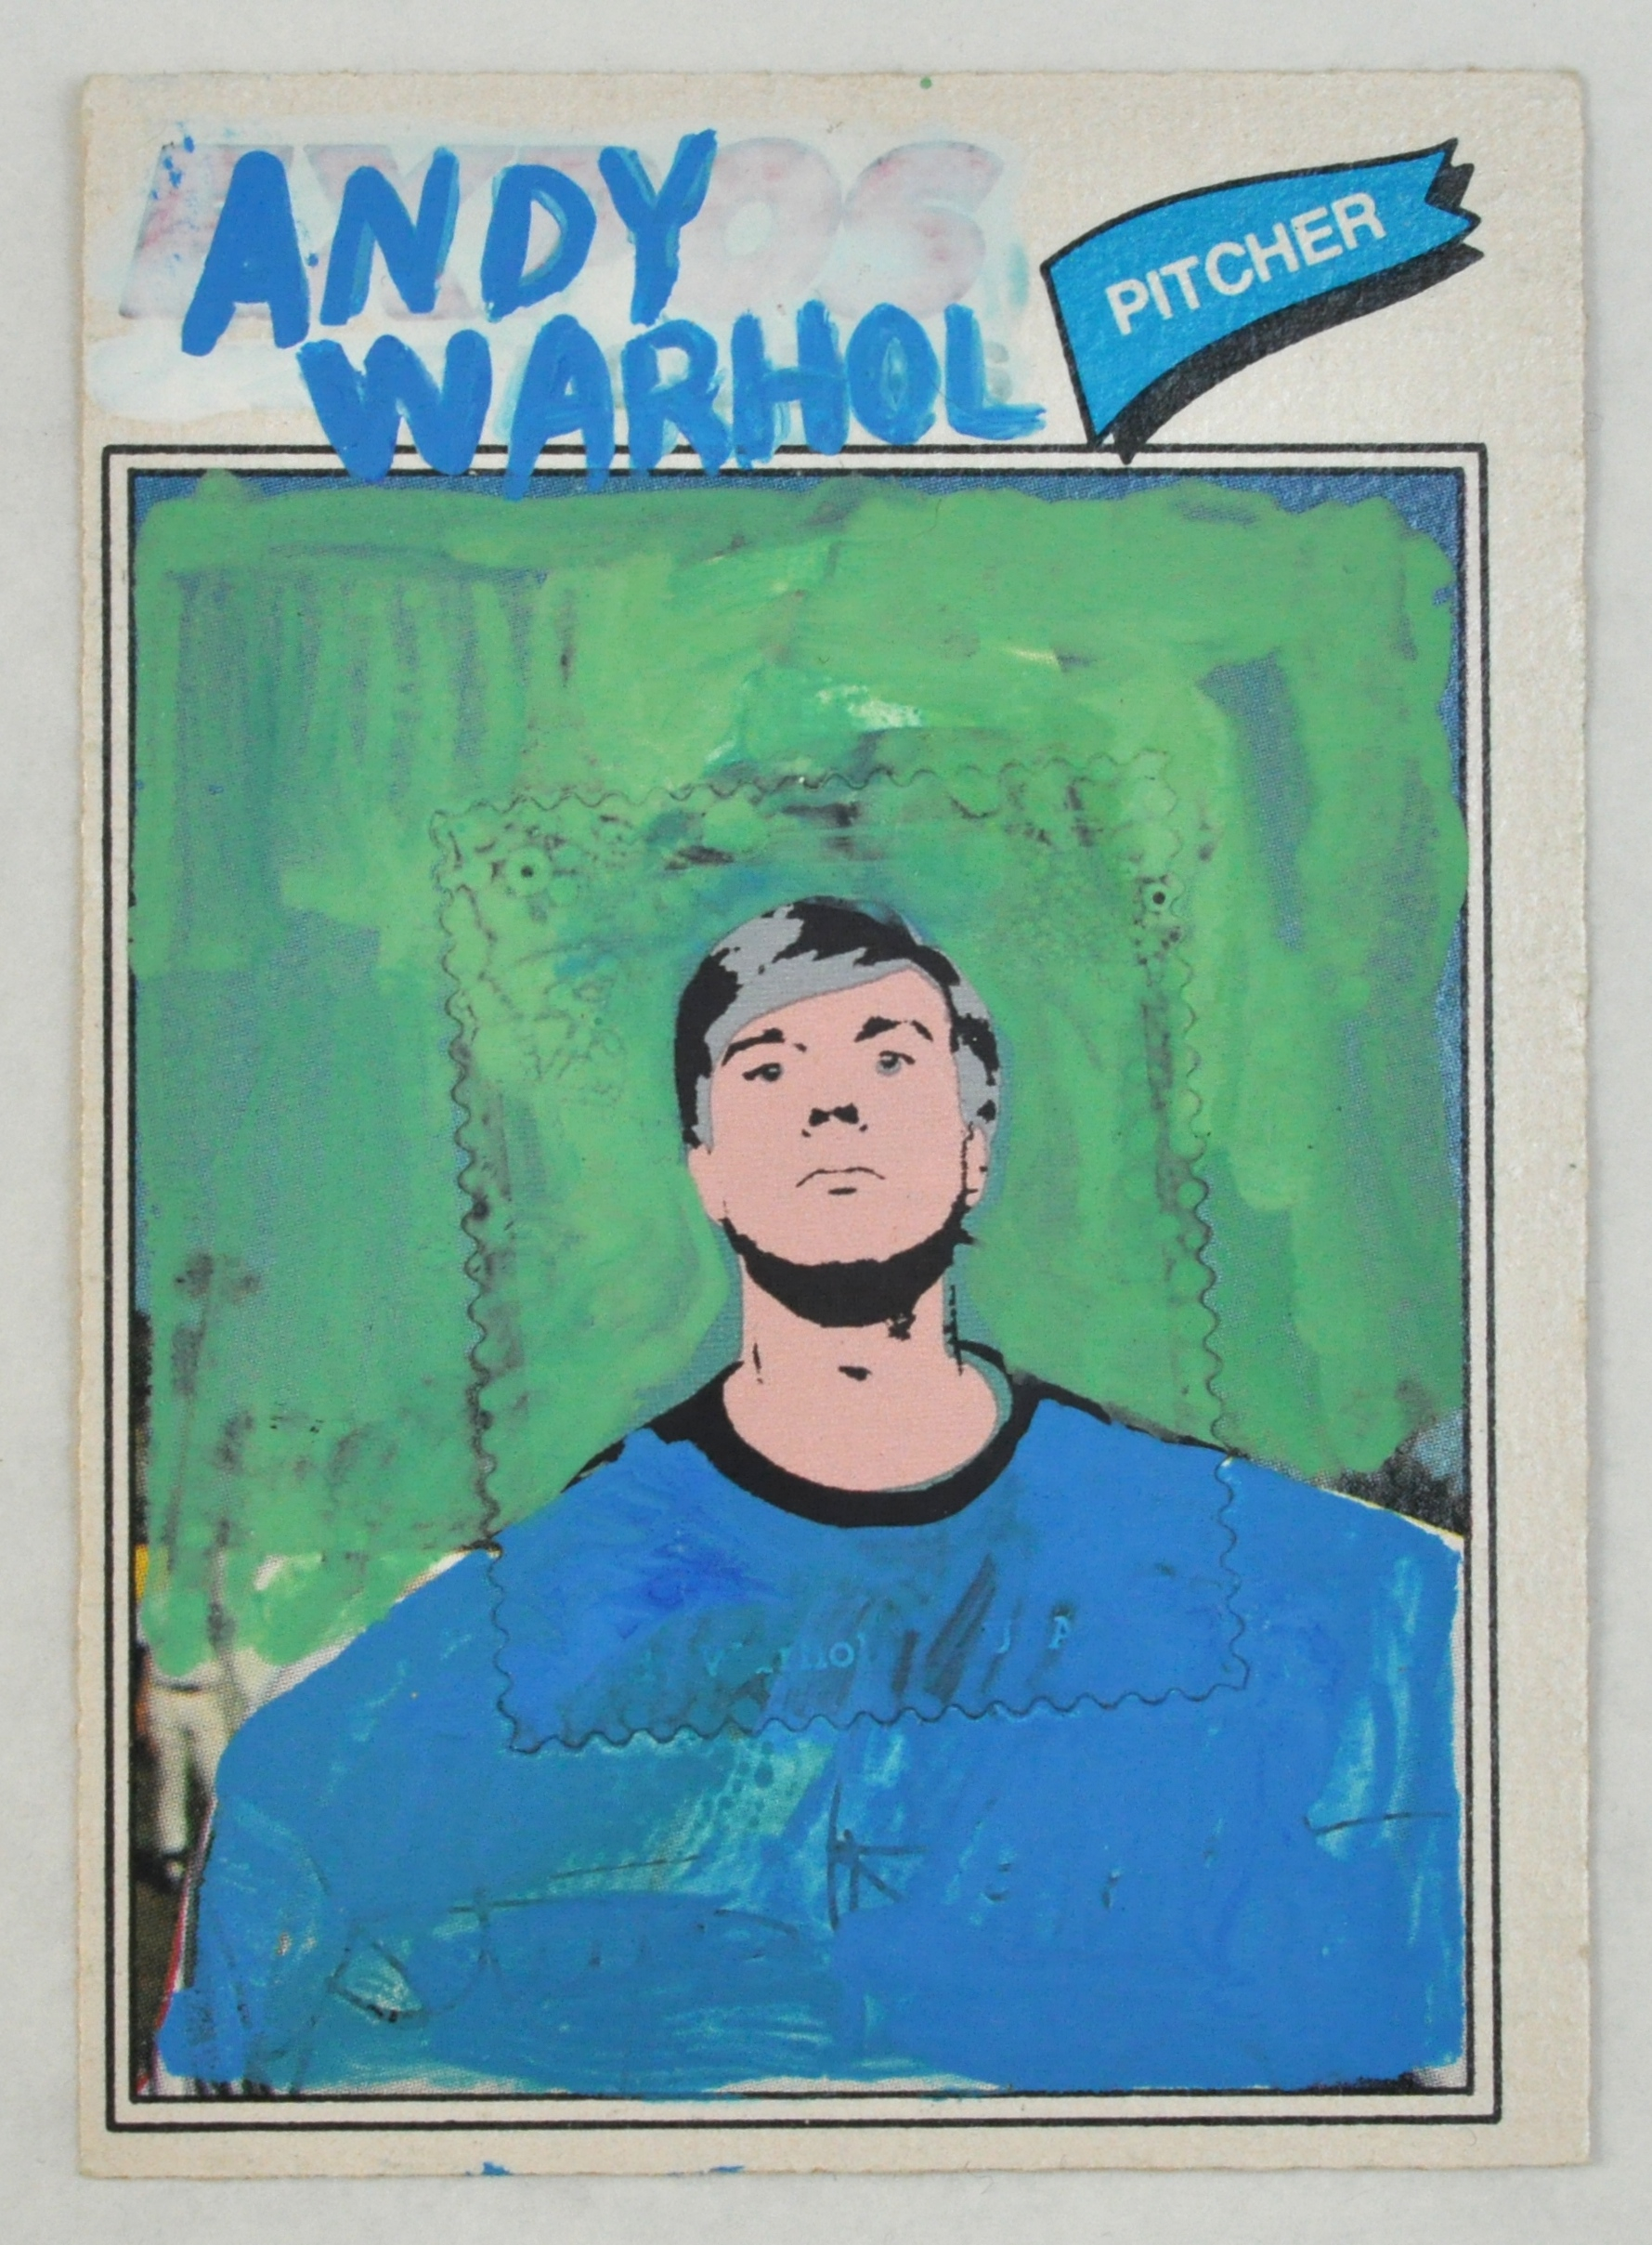 Sporting Card #15 (Andy Warhol)